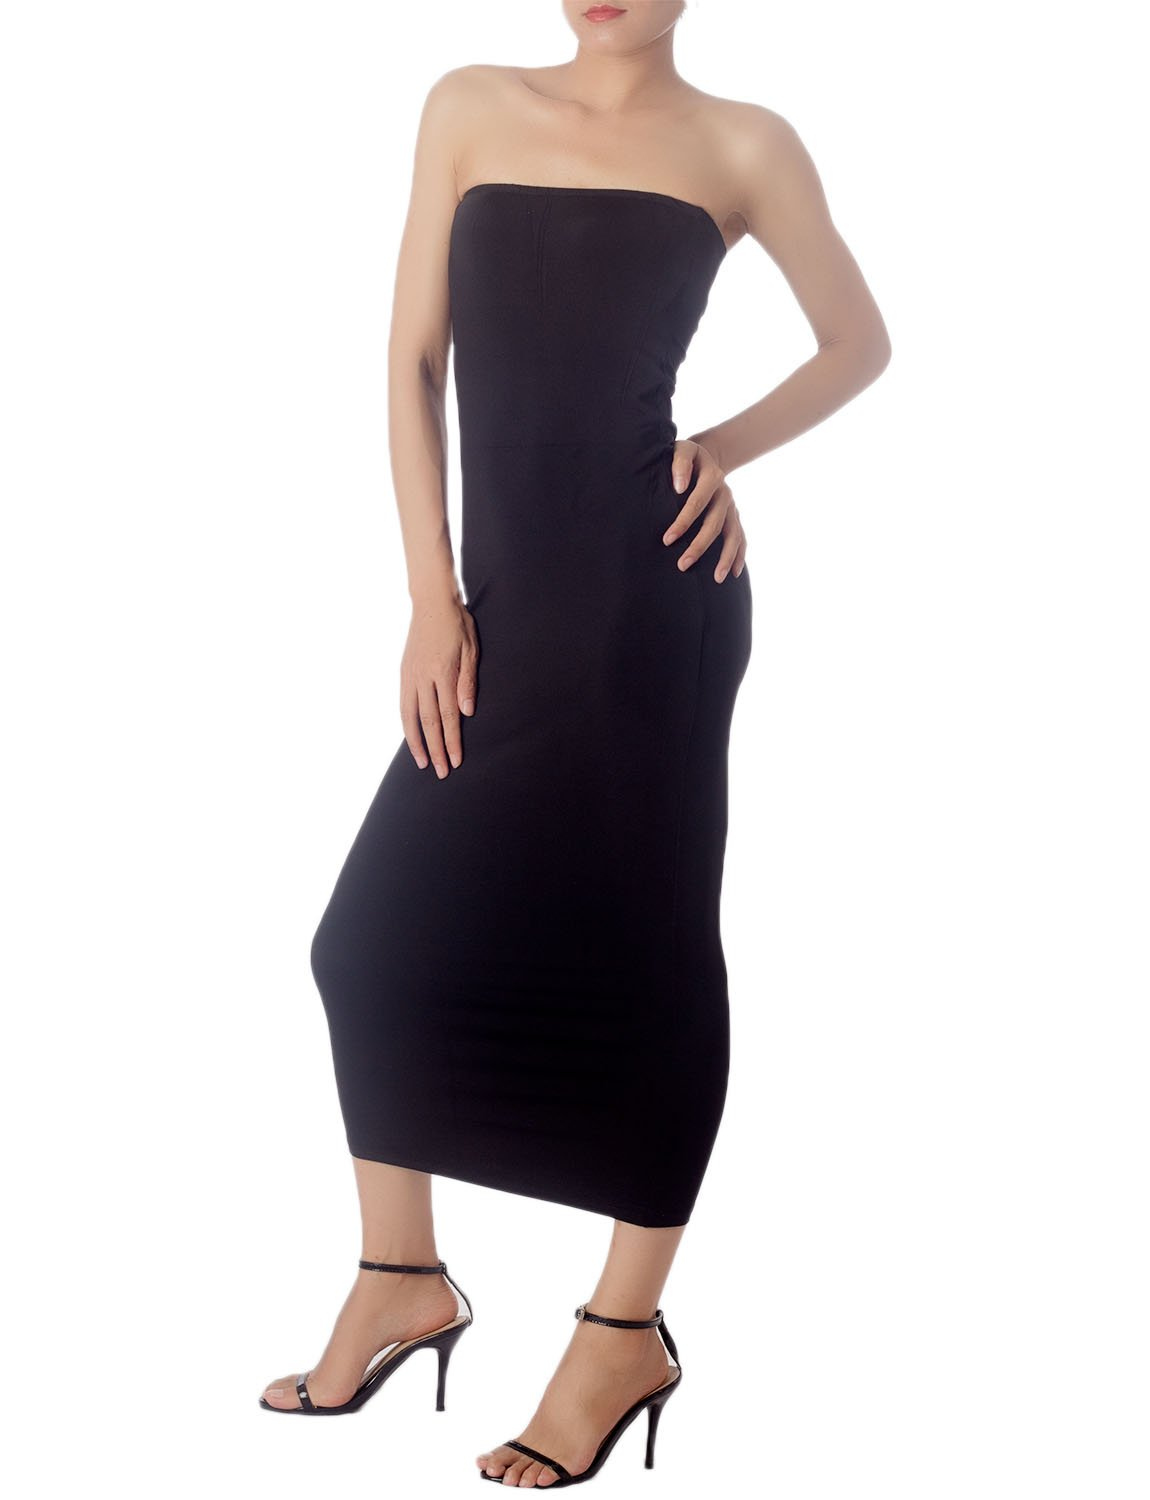 Women's Casual Sleeveless Stretch Tube Pencil Bodycon Long Strapless Dress, Size: XL, Black